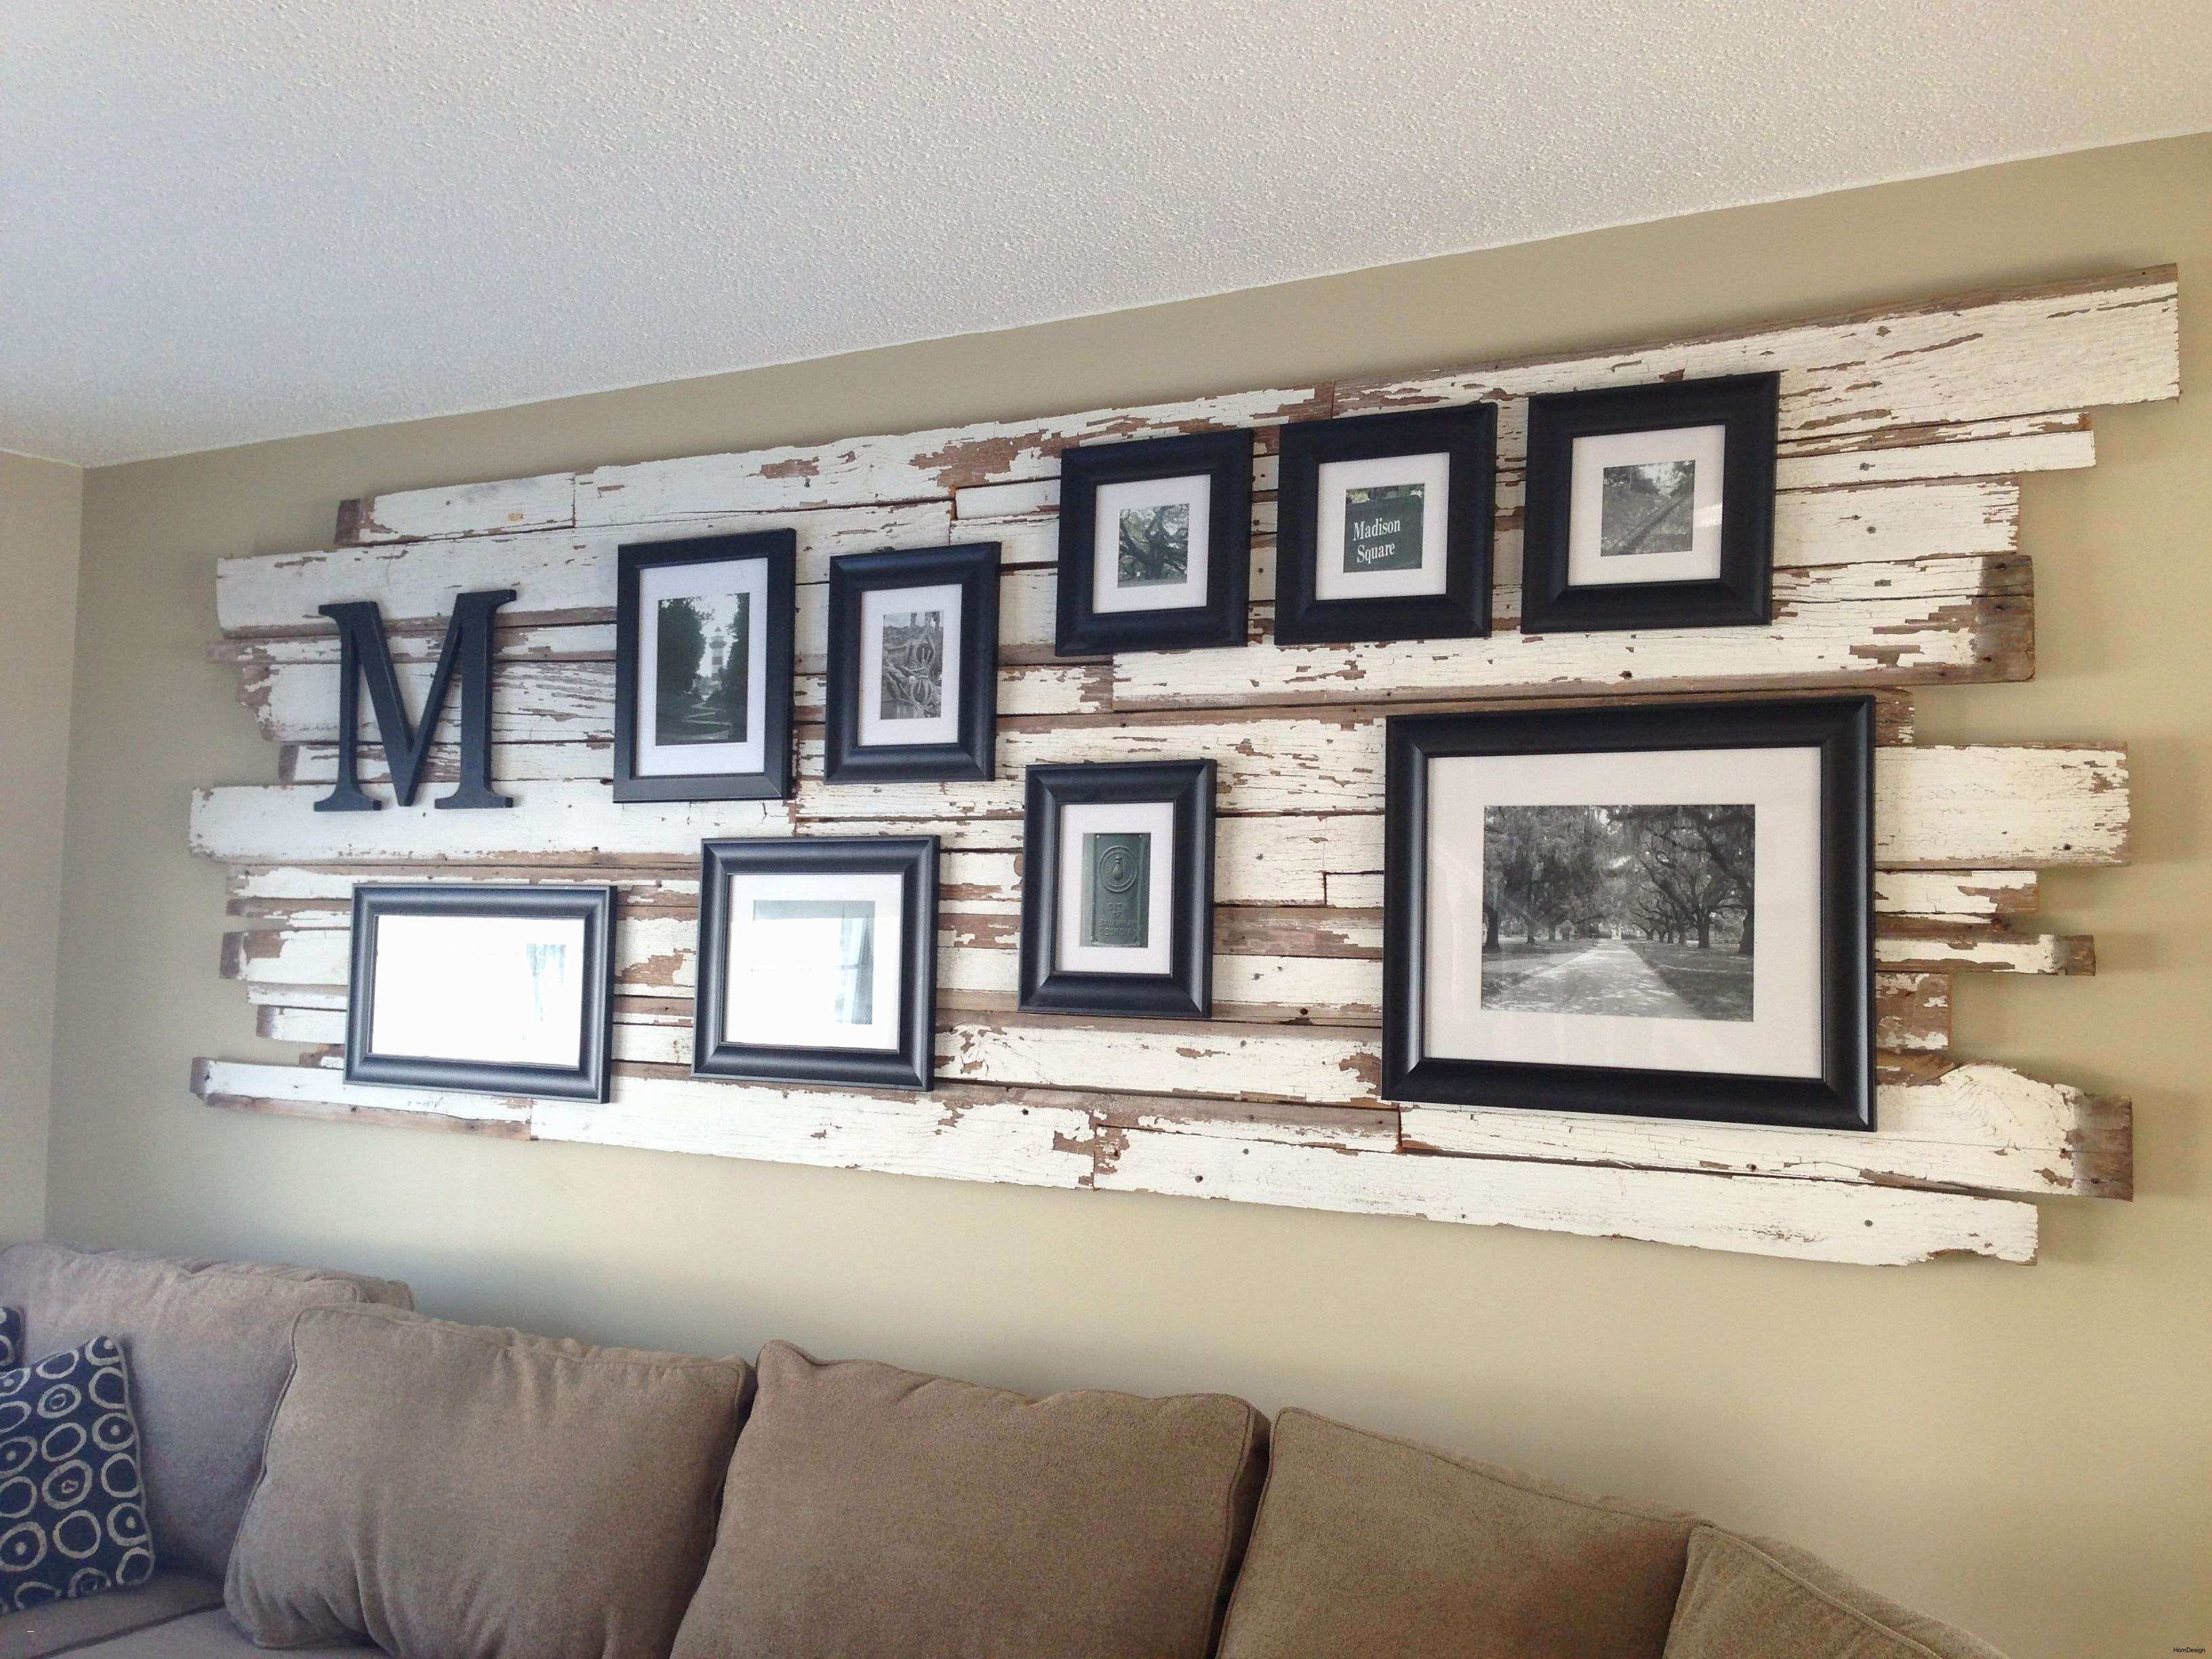 50 New Wall Decor Ideas for Living Room